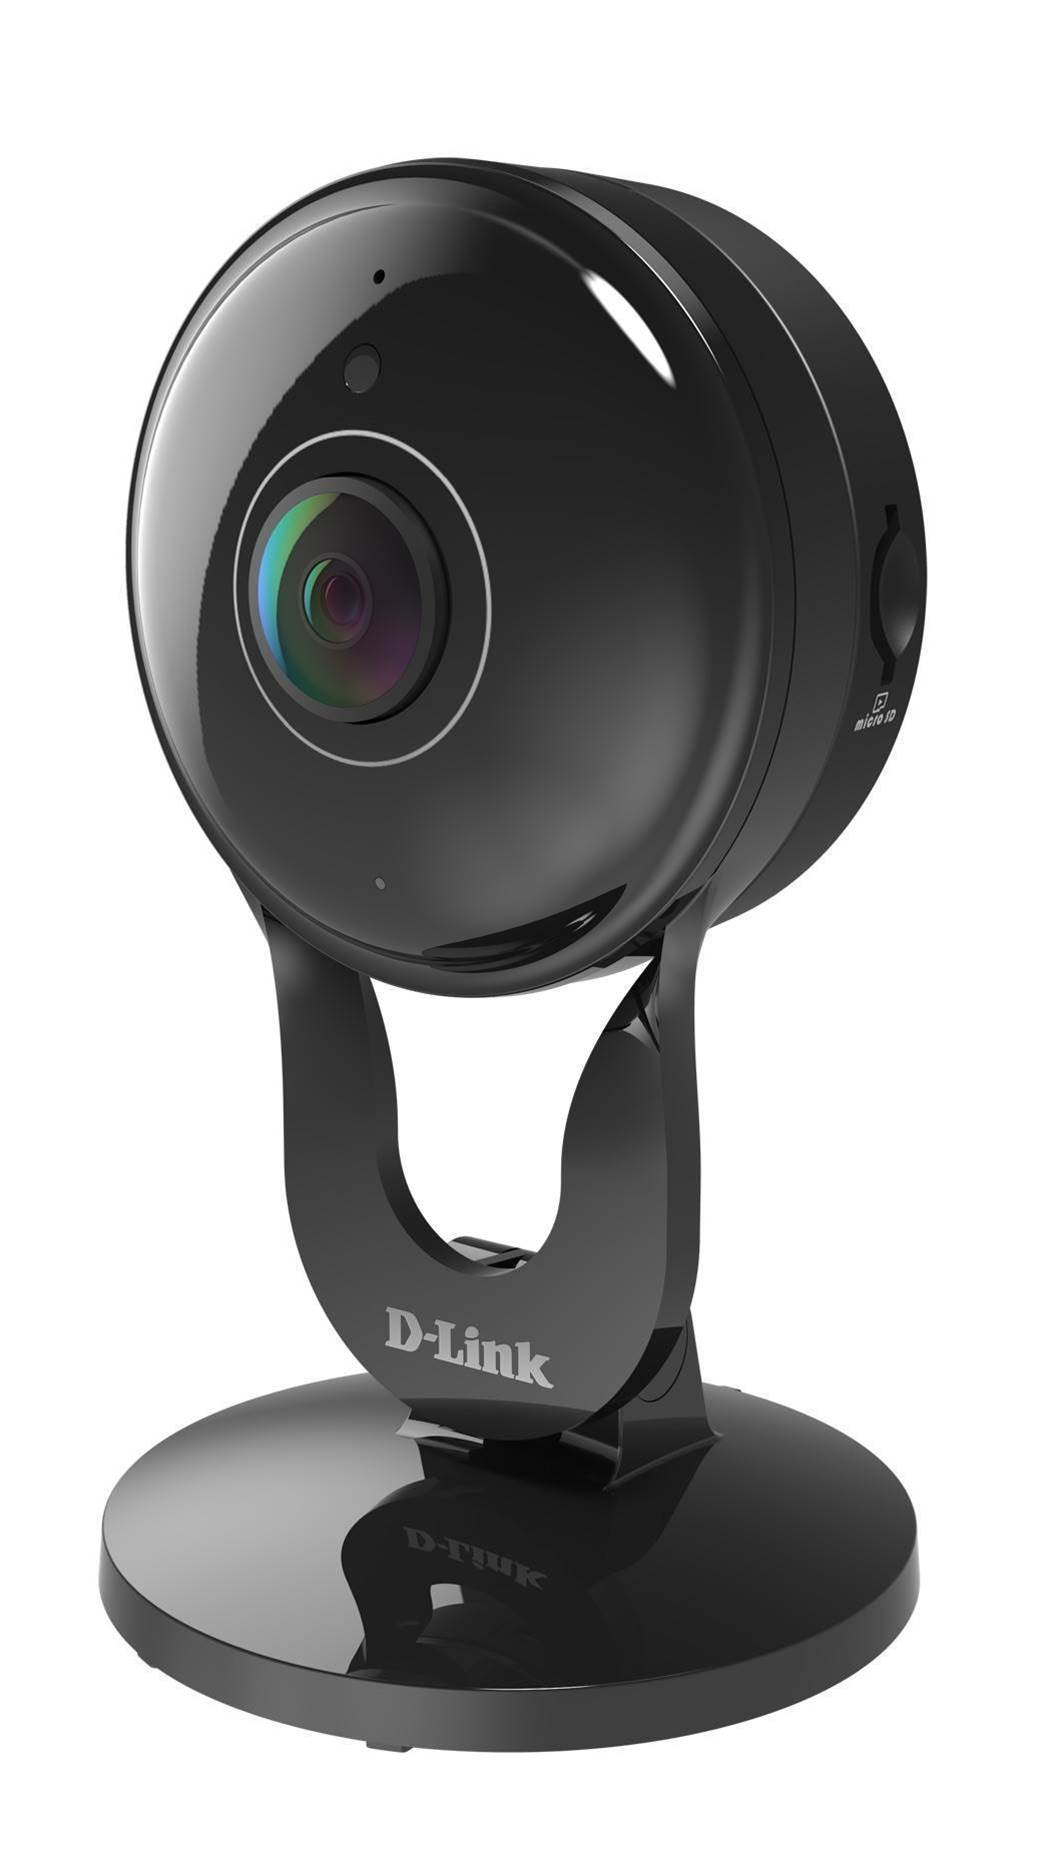 D-Link launches new DCS-2530L full HD 180-degree Wi-Fi camera